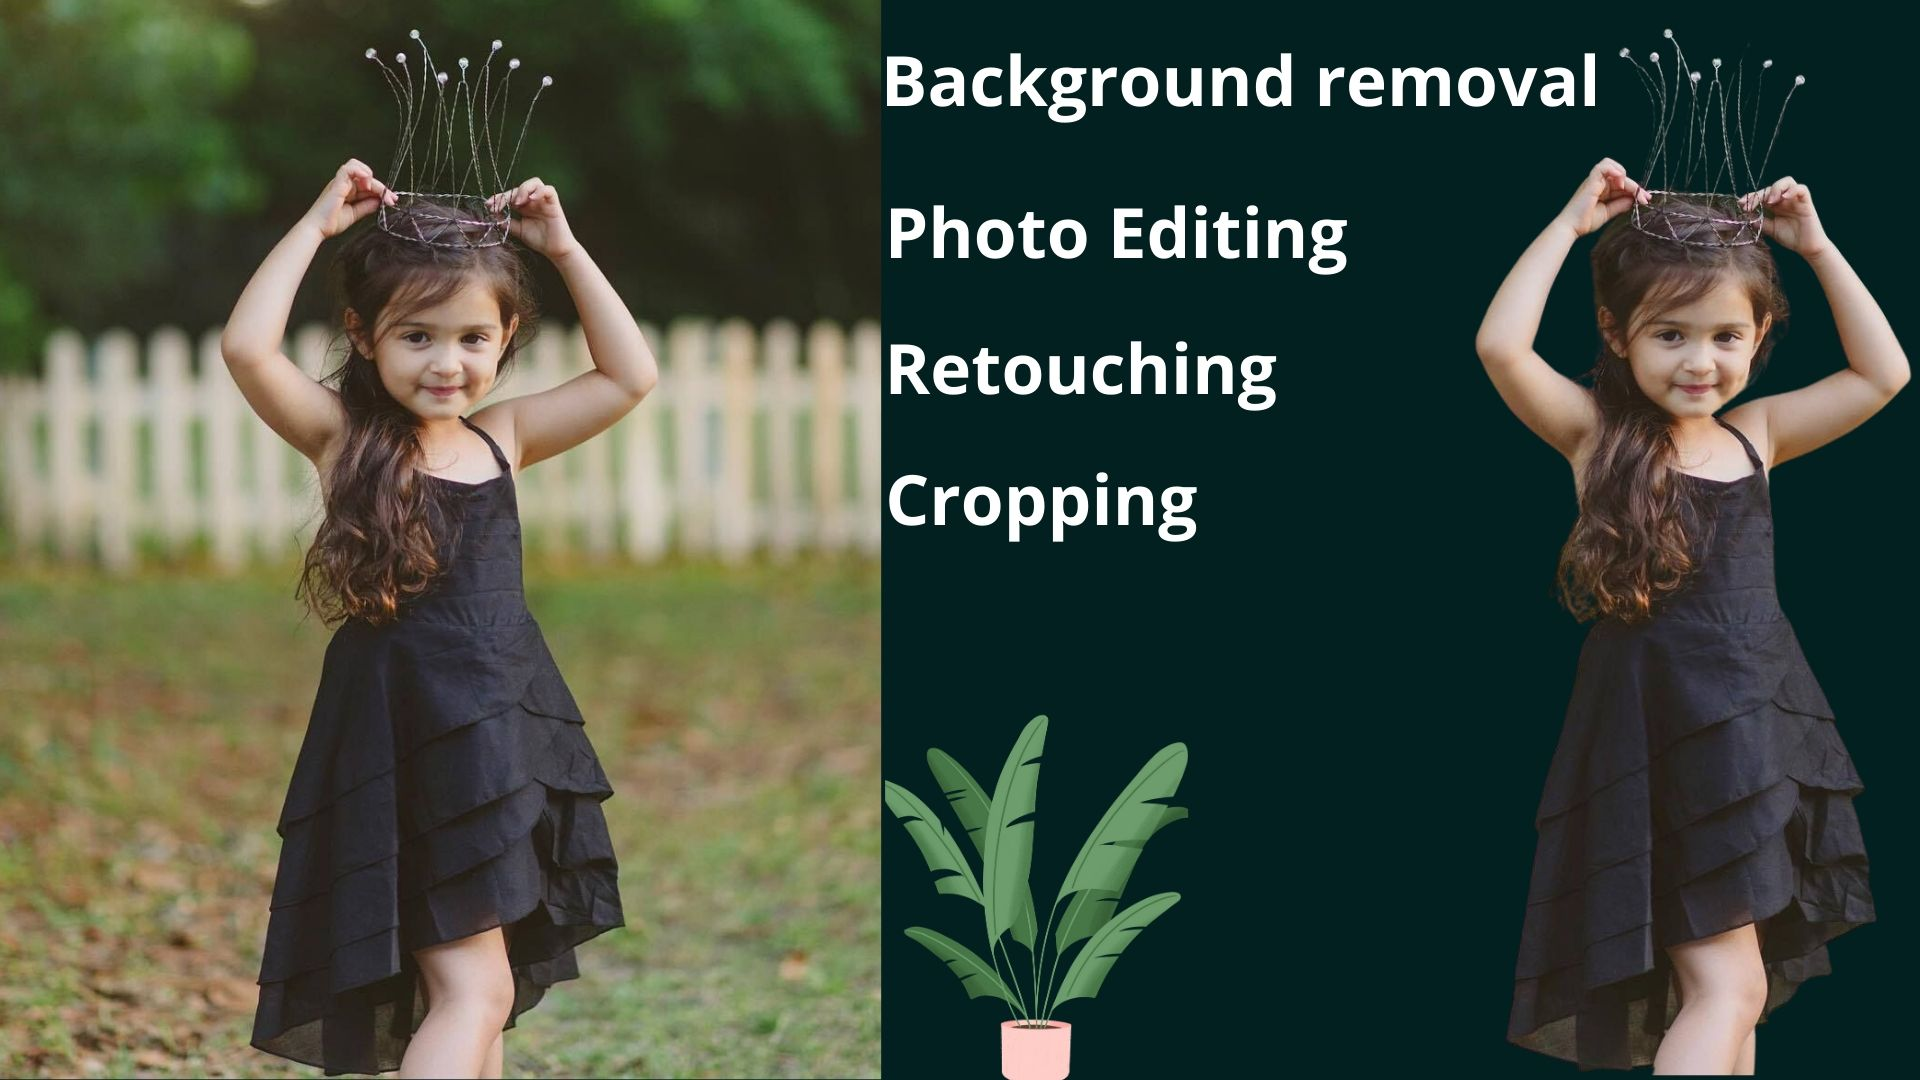 Professionally Product Images Background Remove and Retouch